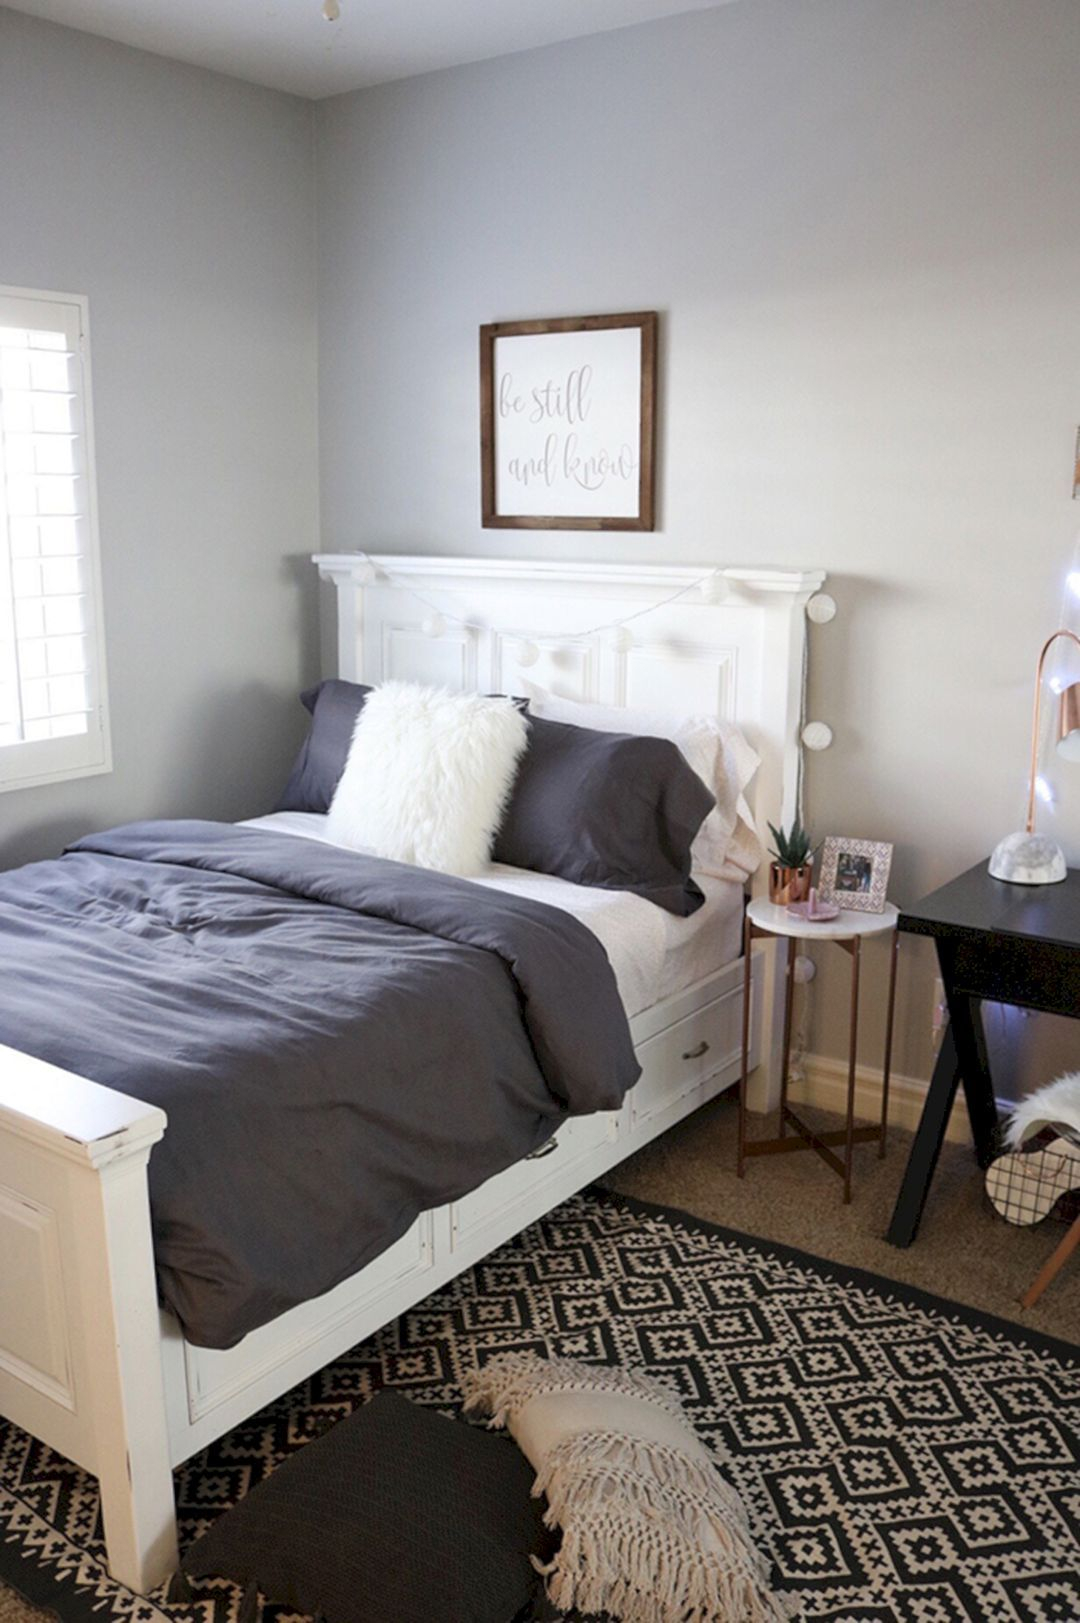 Stunning Modern Bedroom Color Scheme Ideas 40 Best Pictures within 13 Some of the Coolest Ideas How to Improve Modern Teen Bedrooms